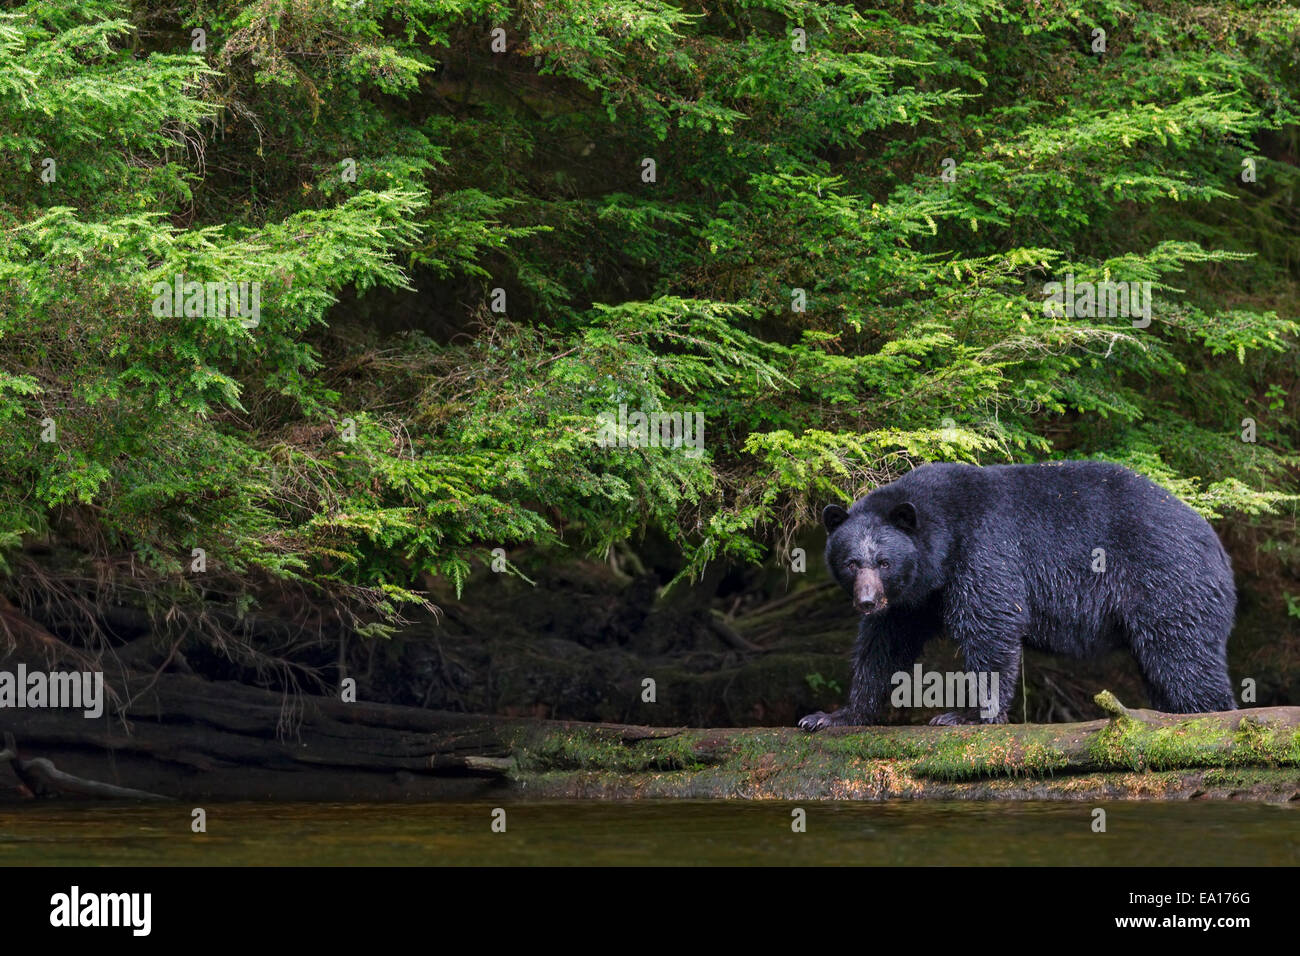 Black bear fishing for seasonally abundant salmon in the summer along a river, Tongass National Forest, Southeast - Stock Image